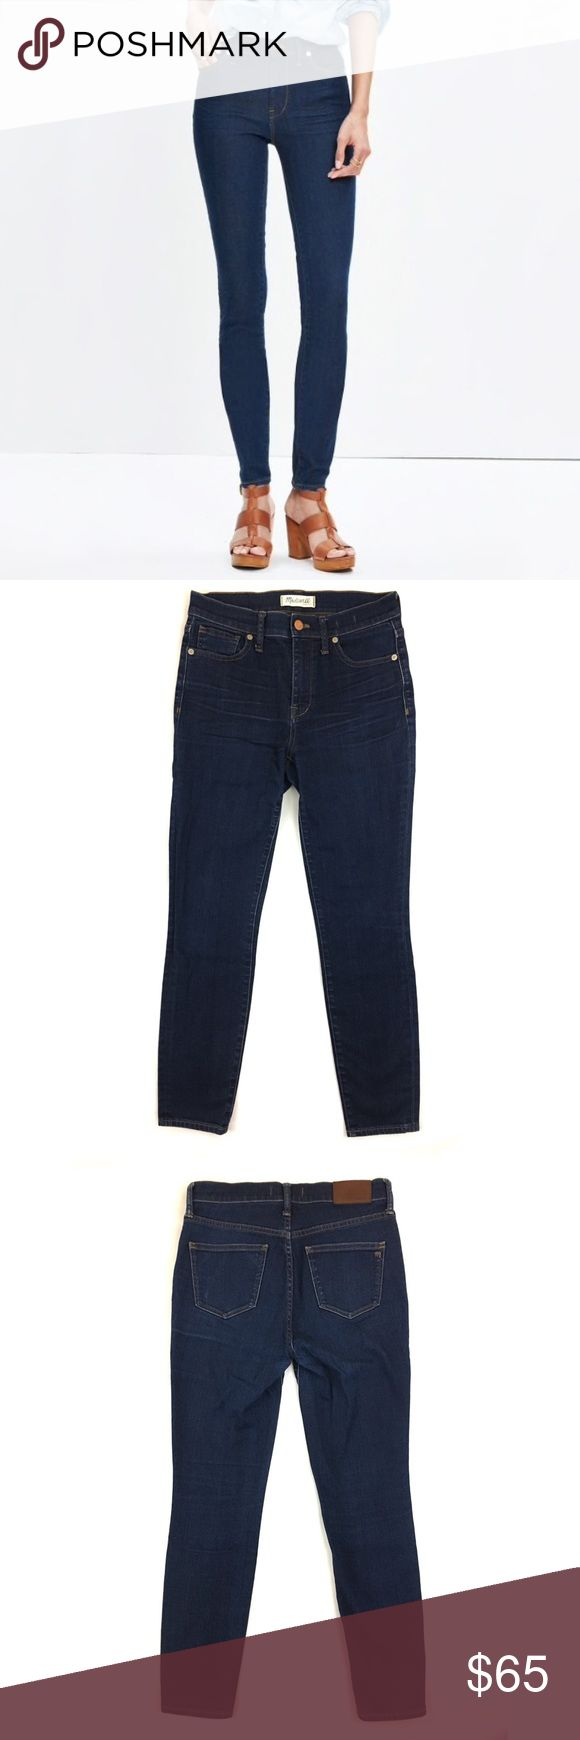 """•{Just In}• Madewell 9"""" High-Rise Skinny Jeans Madewell's High-Rise Skinny Jean in Davis wash.  Lean and sexy with a 9"""" rise (right in '70s rock-muse territory), this one's legs-for-days look and supersleek effect come from using some of the best denim in the world.  Features a copper button, matte silver rivets, and contrast stitching.  Davis wash is a dark indigo wash with a lovingly worn-in look.  Size:  27  Condition:  No visible flaws, minimal signs of wear — EUC  Fabric content:  92%…"""